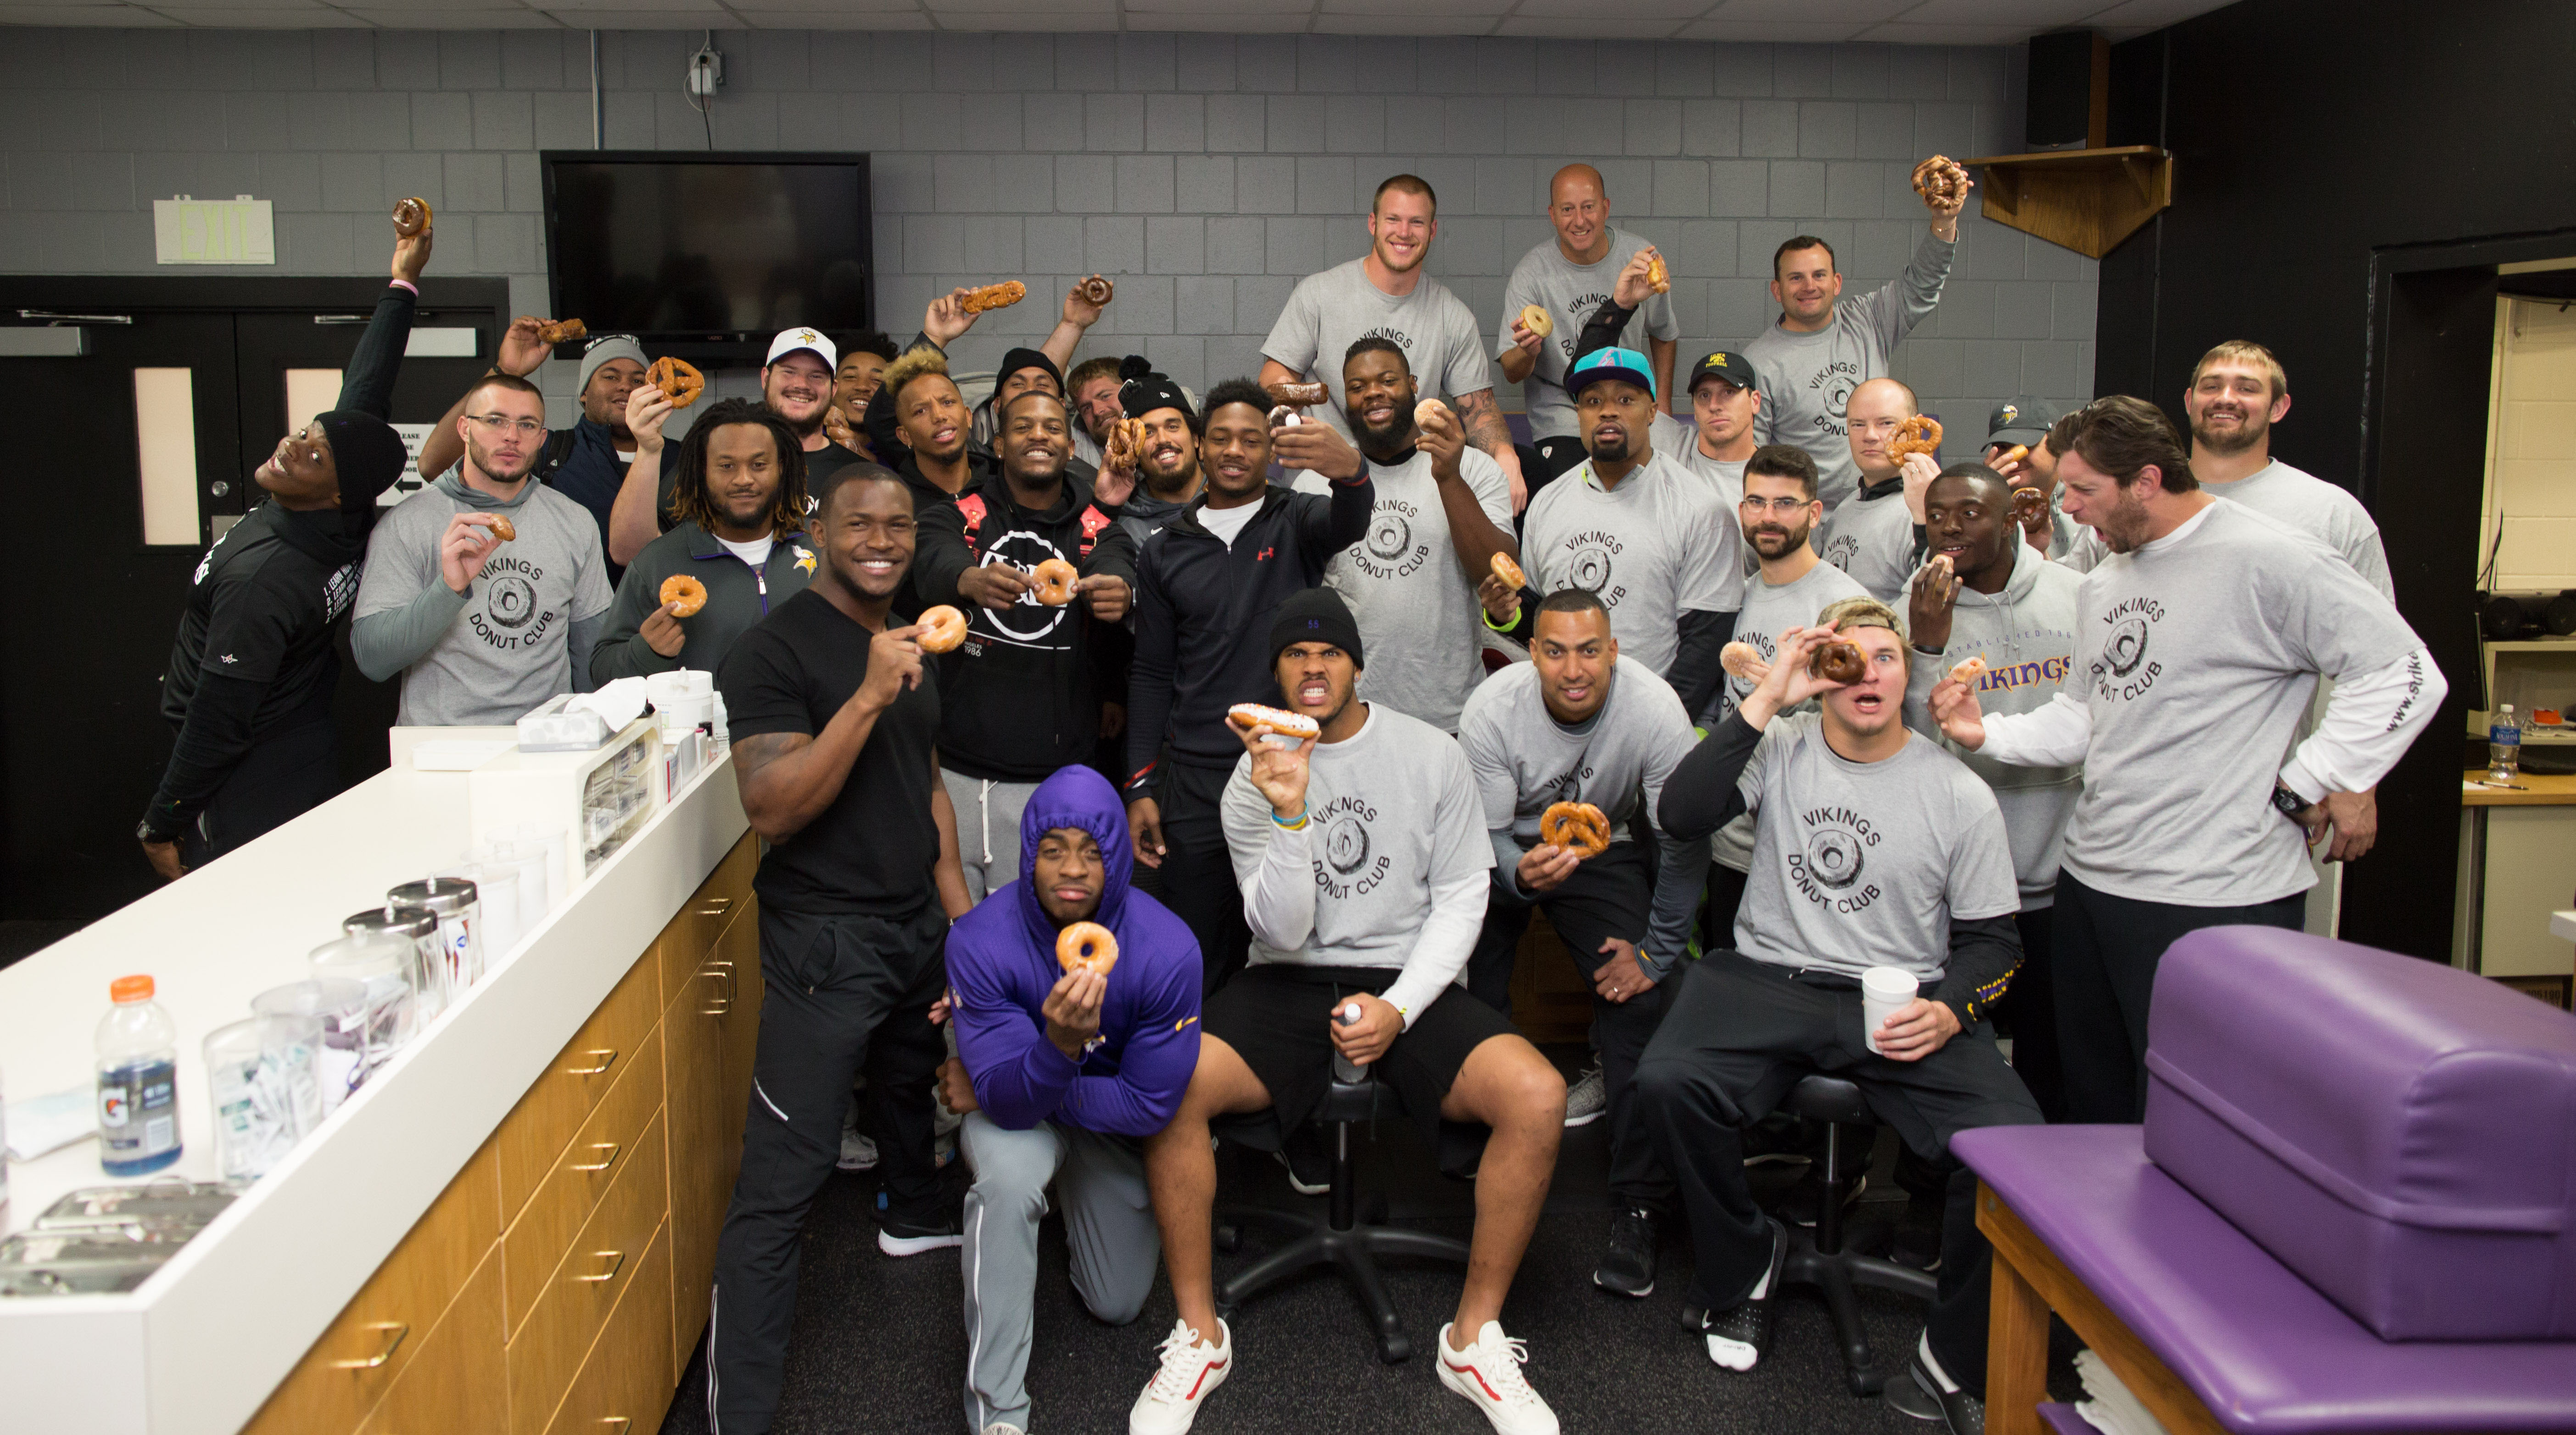 Donut Club gathers for the Week 6 group shot.